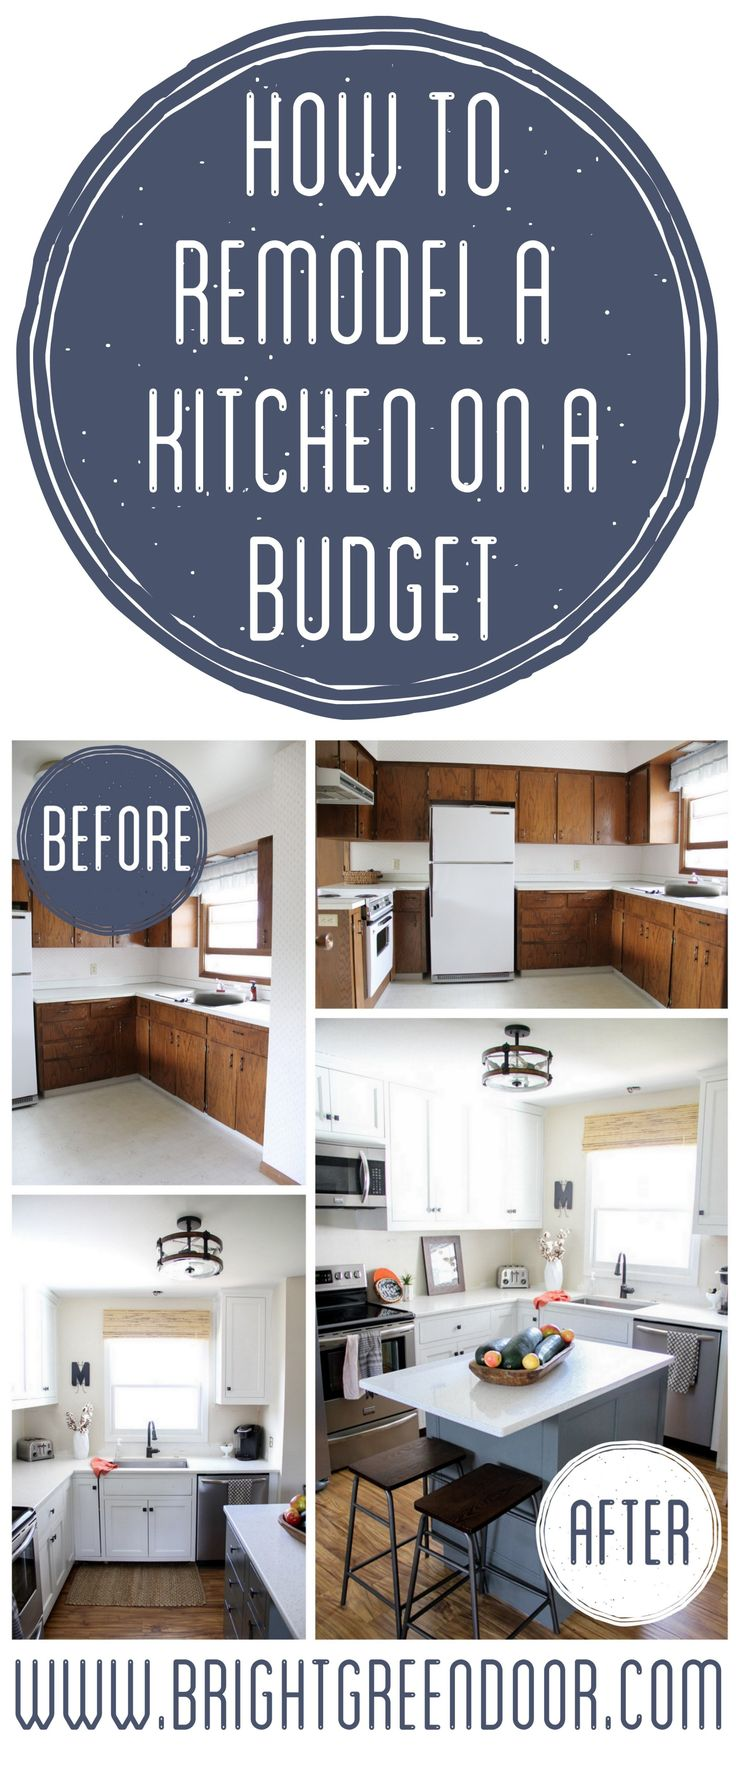 Inexpensive Kitchen Remodeling 25 Best Ideas About Budget Kitchen Remodel On Pinterest Small